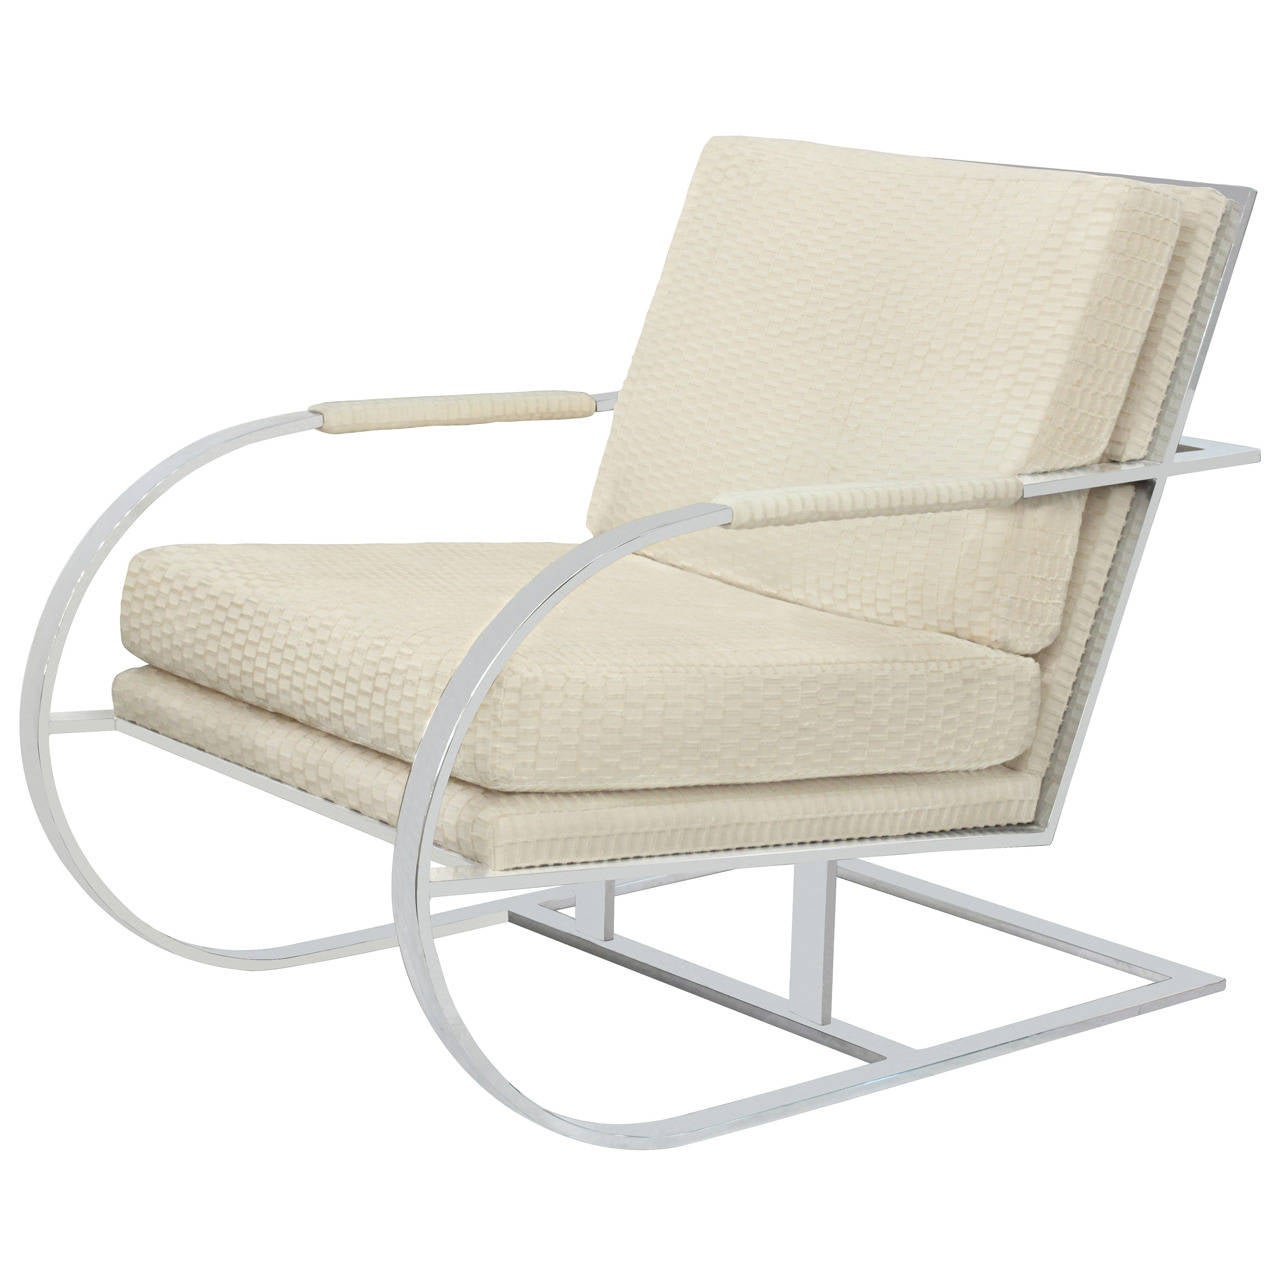 Cantilevered Lounge Chair With Frame In Chrome By Milo